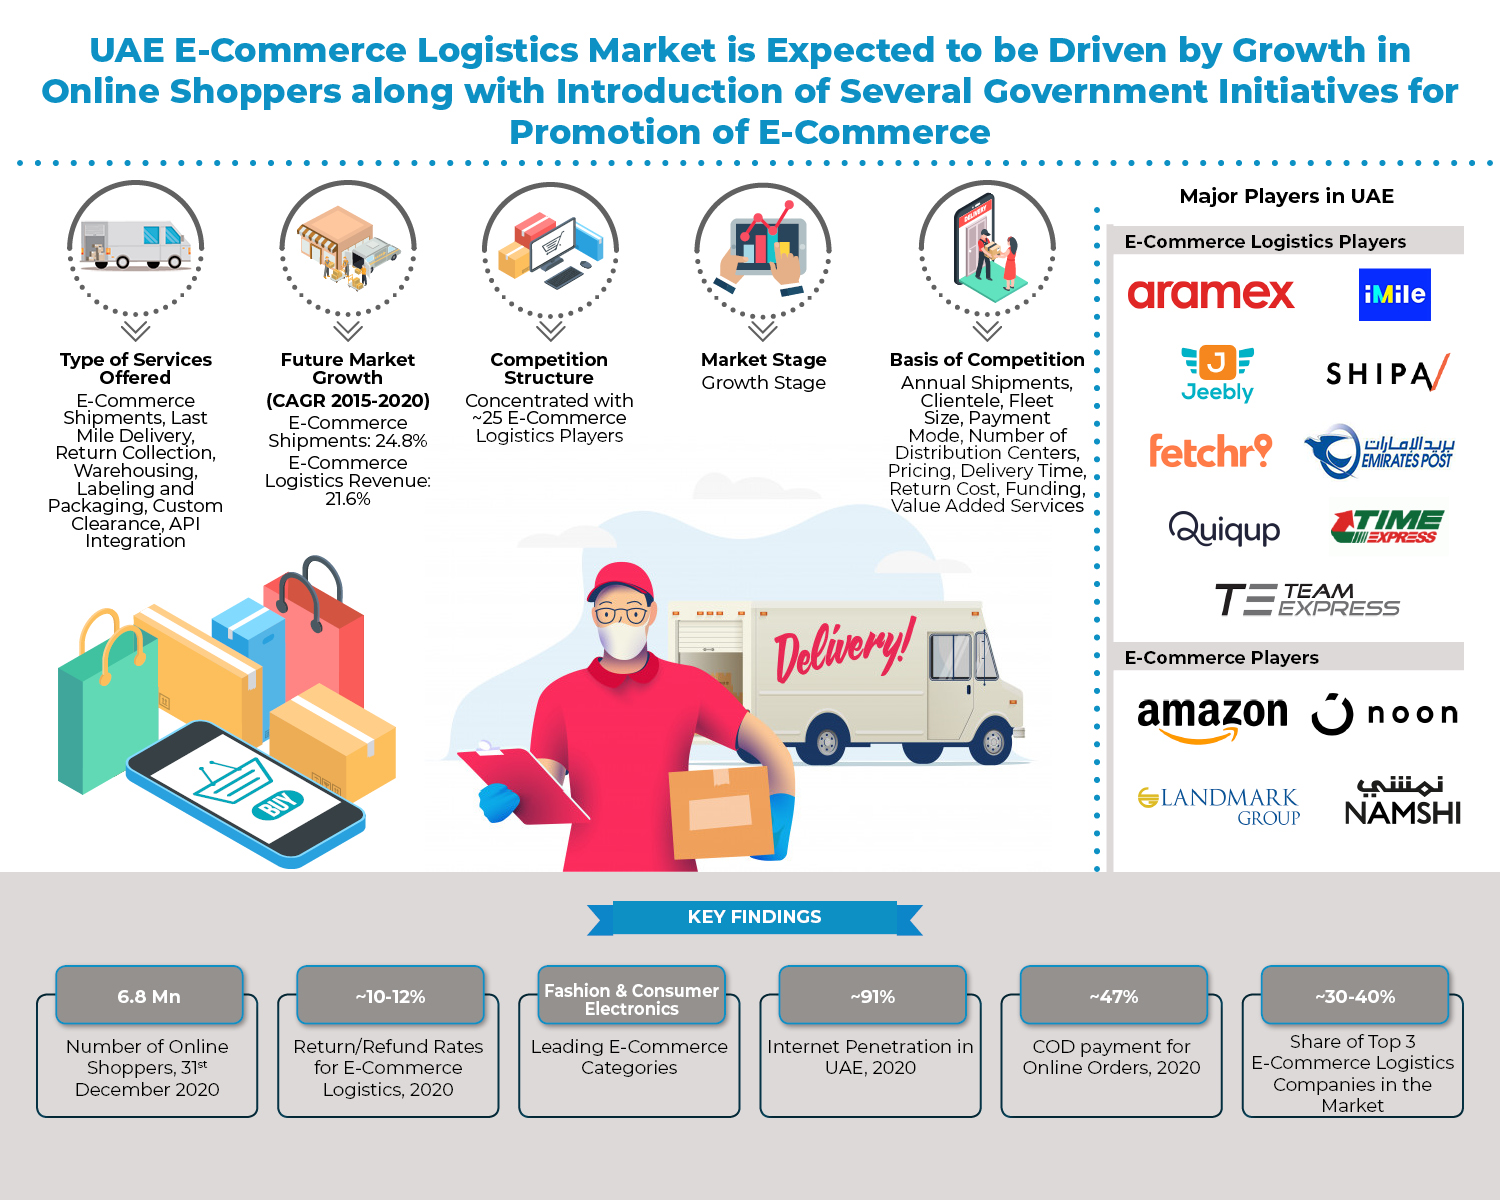 Changing Consumer Preference for Online Shopping, Entry of New Players and Technological Disruptions Expected to Drive the UAE E-Commerce Logistics Market: Ken Research